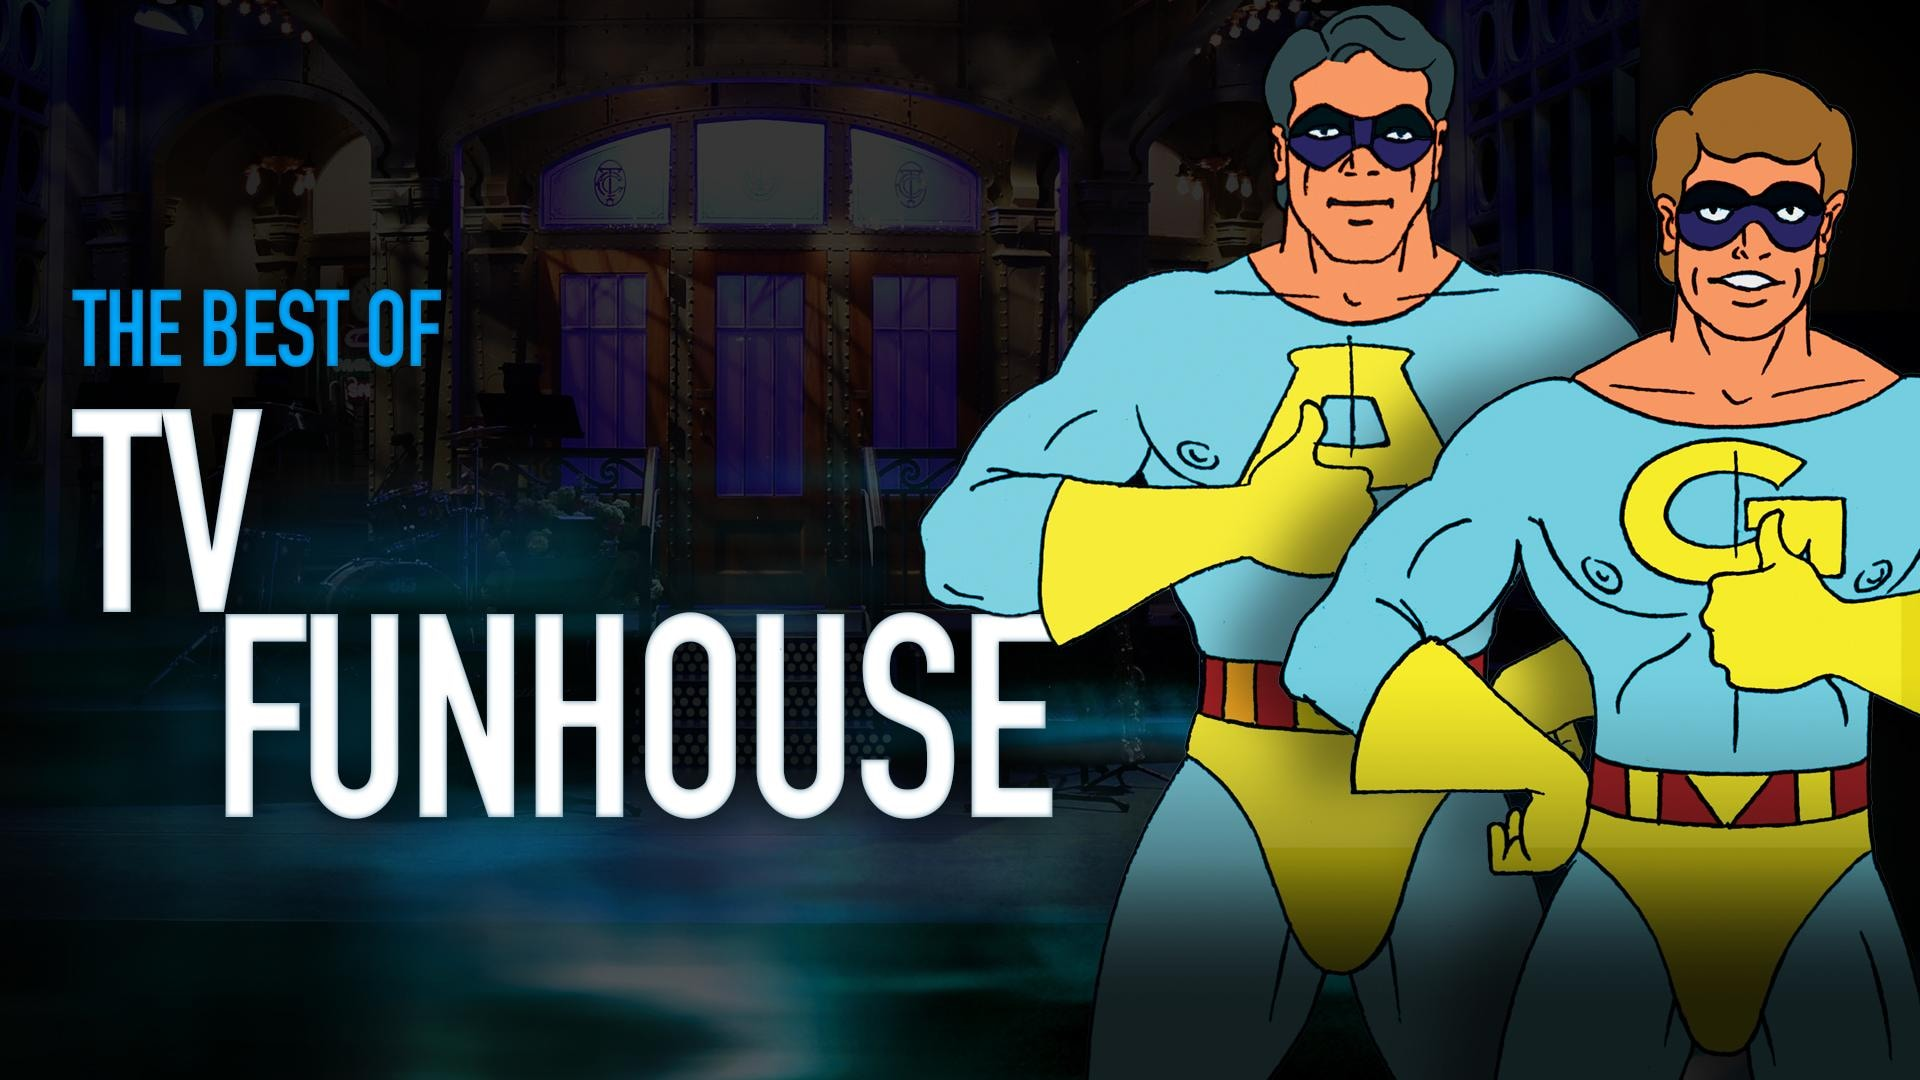 The Best of TV Funhouse